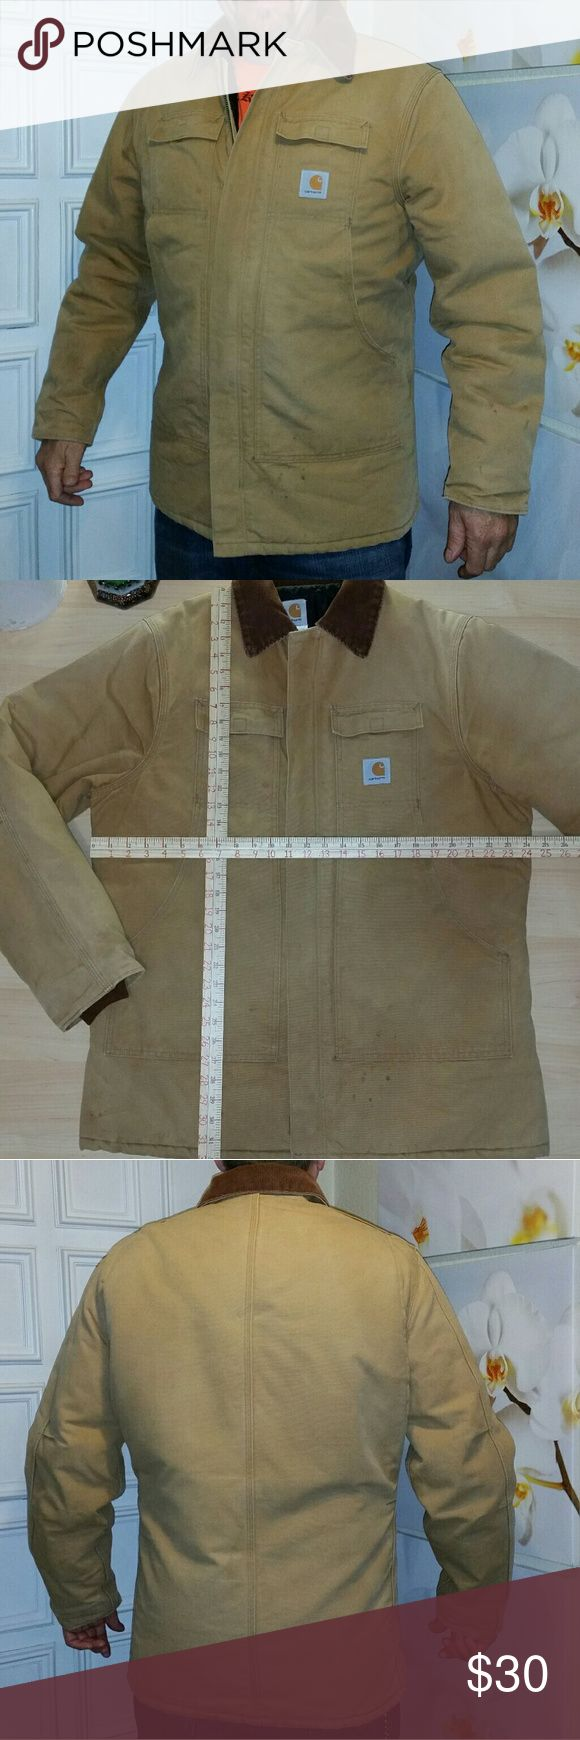 "Carhartt work winter coat Good to great condition. Has been well washed, clean & ready-to-wear. Has light overall staining... Nothing too heavy, great work coat!  Model is 6'1"" & 200 plus pounds. Has snaps around underside of collar, may have came with a hood Bundle and save 15%  May have additional shipping weight cost, depending on bundled items...  See other listings for closer pictures of staining... Carhartt Jackets & Coats"